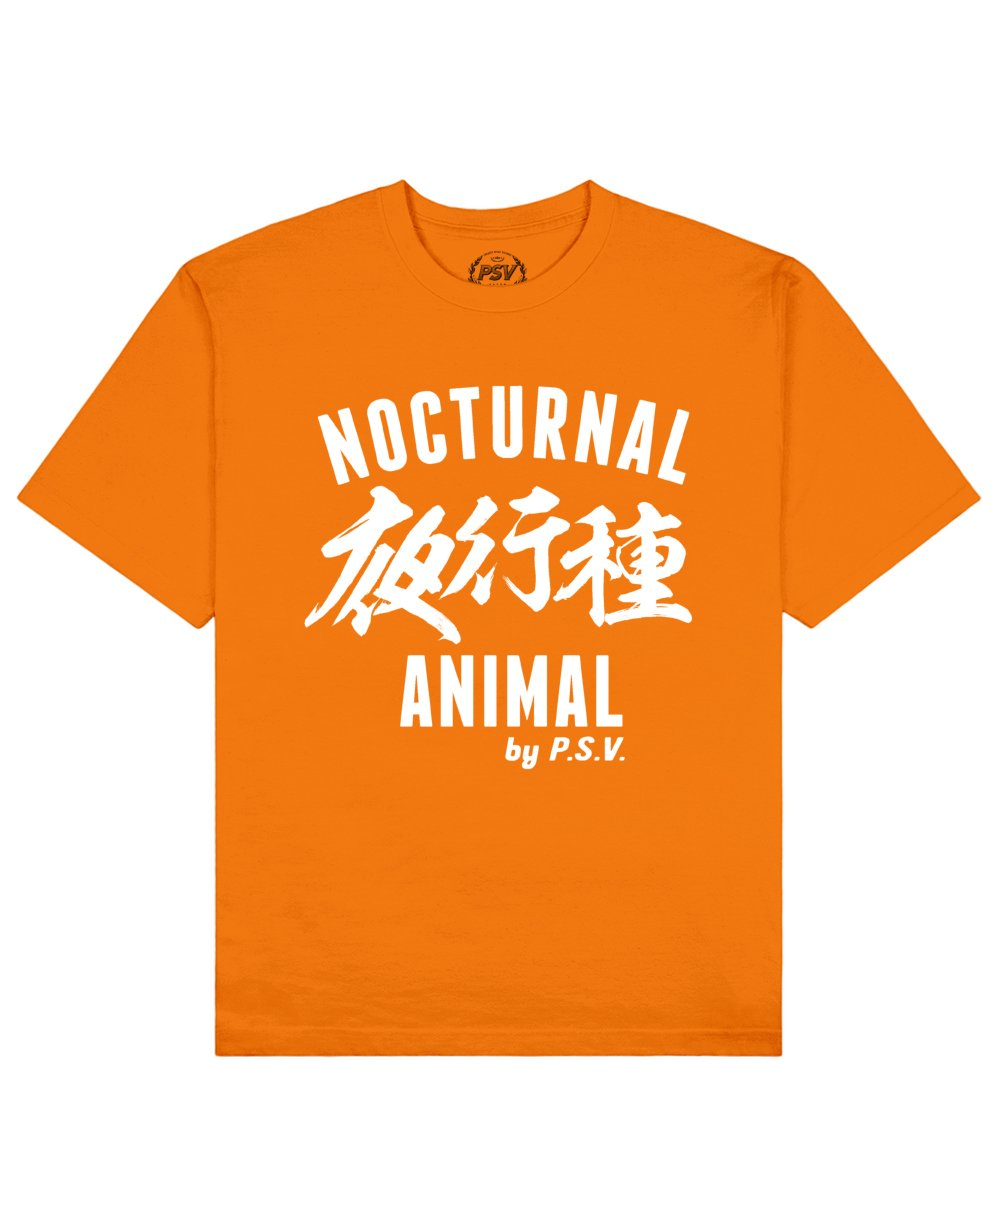 Nocturnal Animal Print T-Shirt in Orange - T-Shirts - PSV - BRANMA